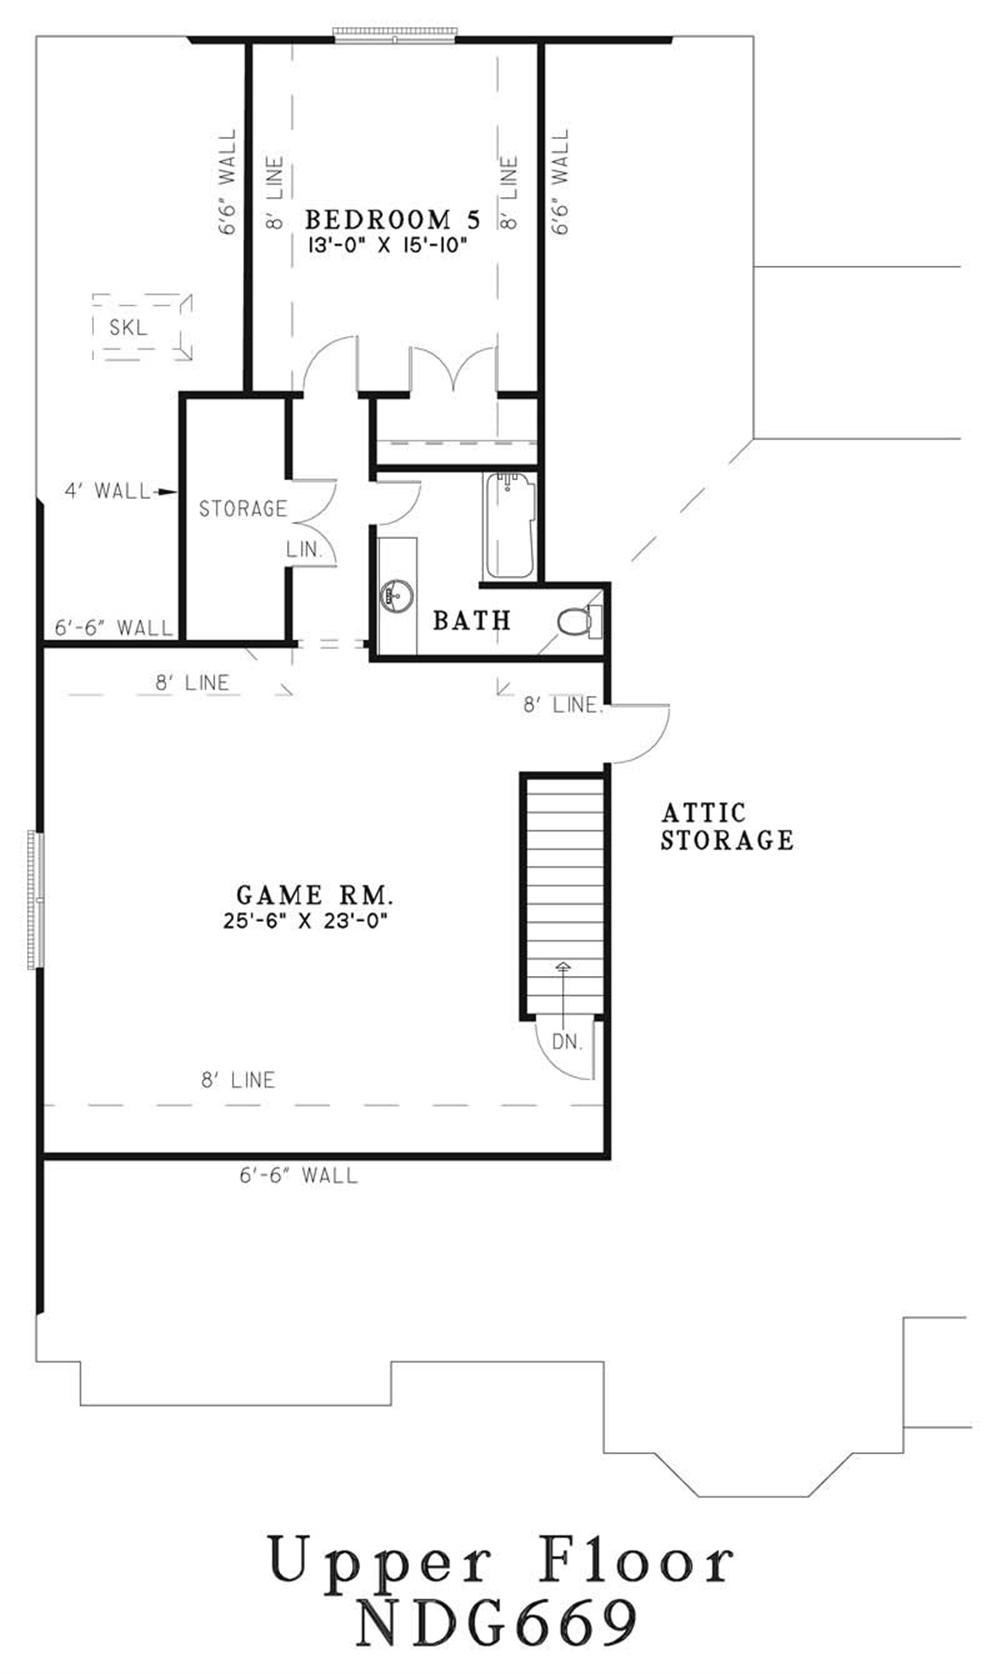 Upper Floor Plan NDG-669